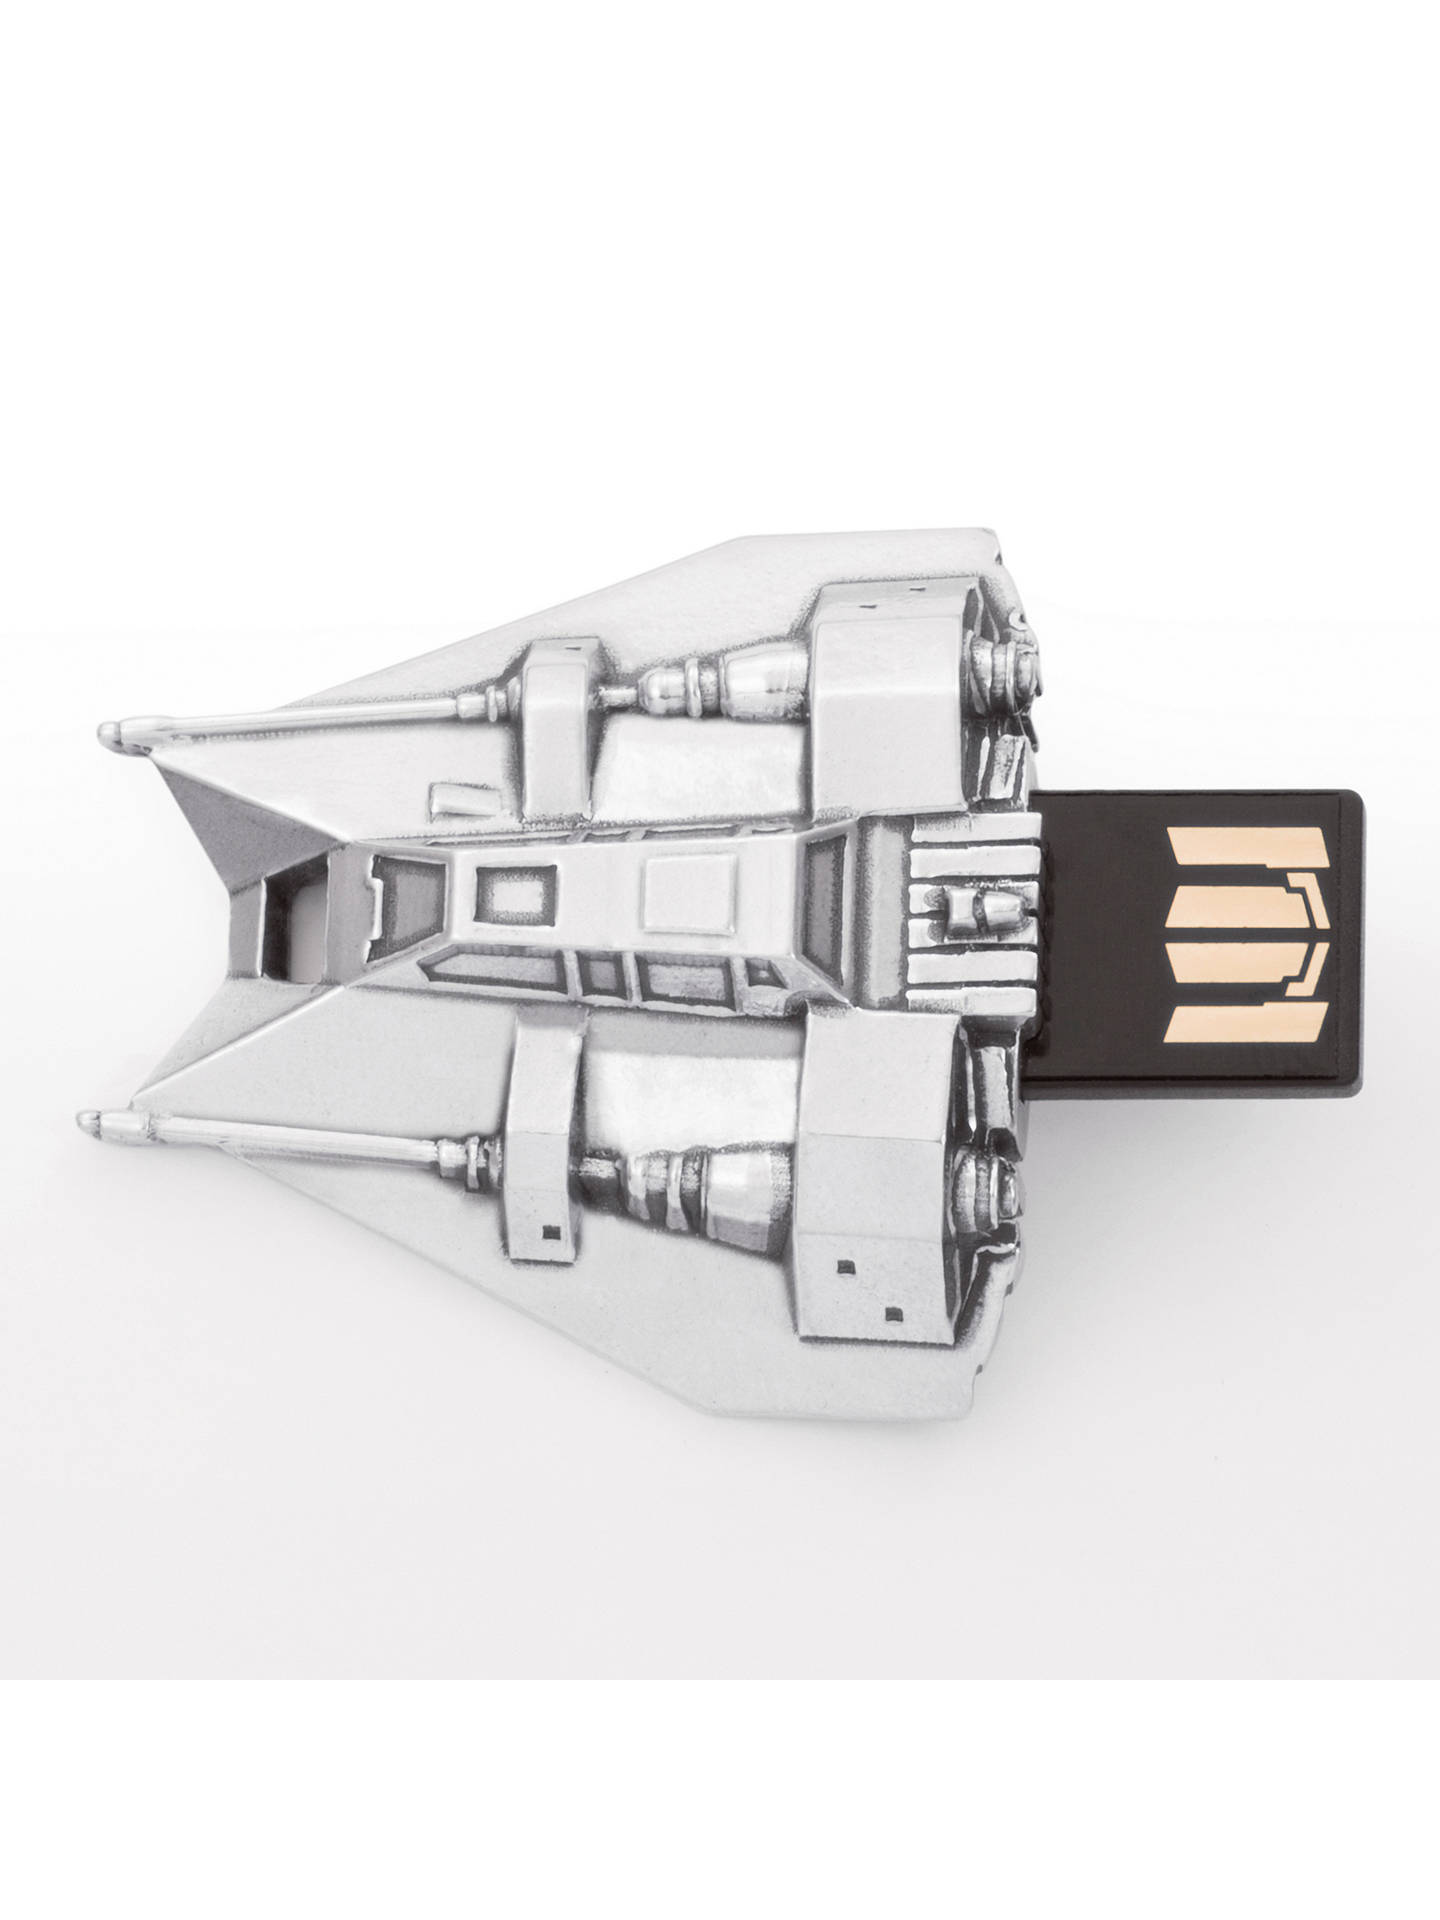 Buy Royal Selangor Star Wars Snowspeeder USB Flash Drive, 16GB Online at johnlewis.com